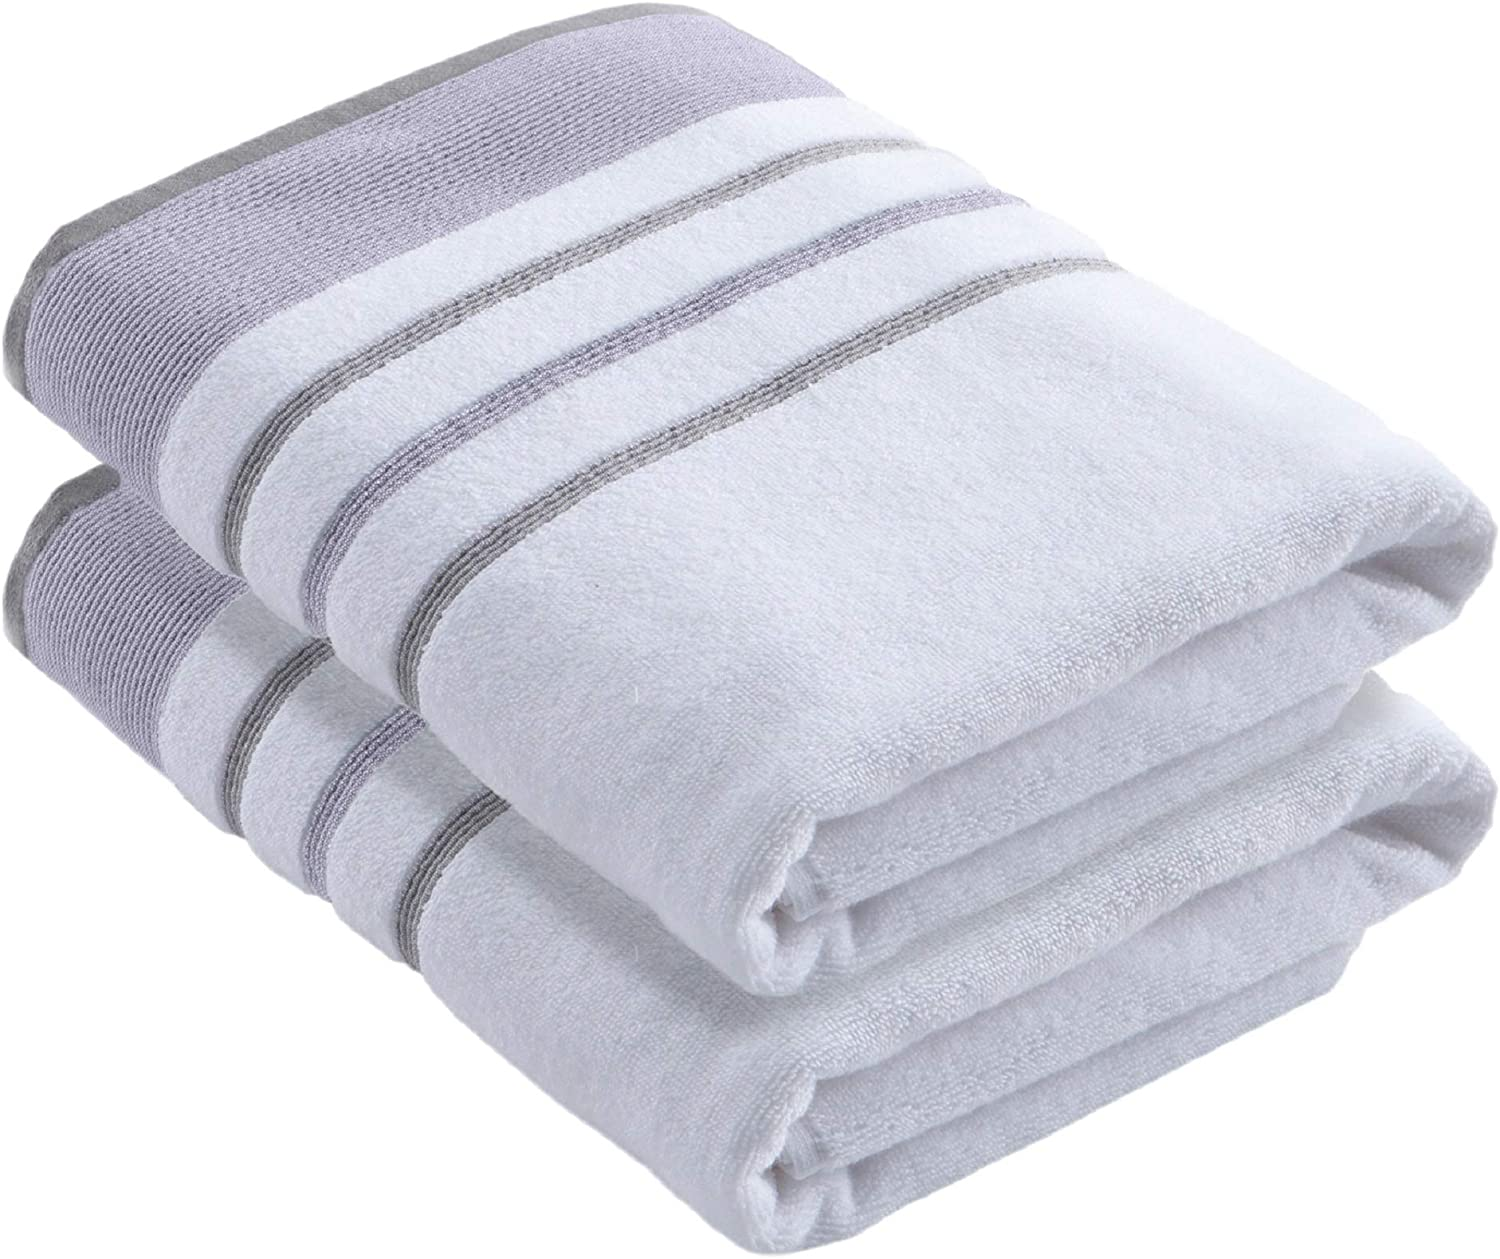 Turkish Cotton Striped 2-Pack Bath Towel Set (30 x 54 inches) Oversized and Absorbent Luxury Quick-Dry Towels. Noelle Collection (Set of 2, Lavender / Grey)